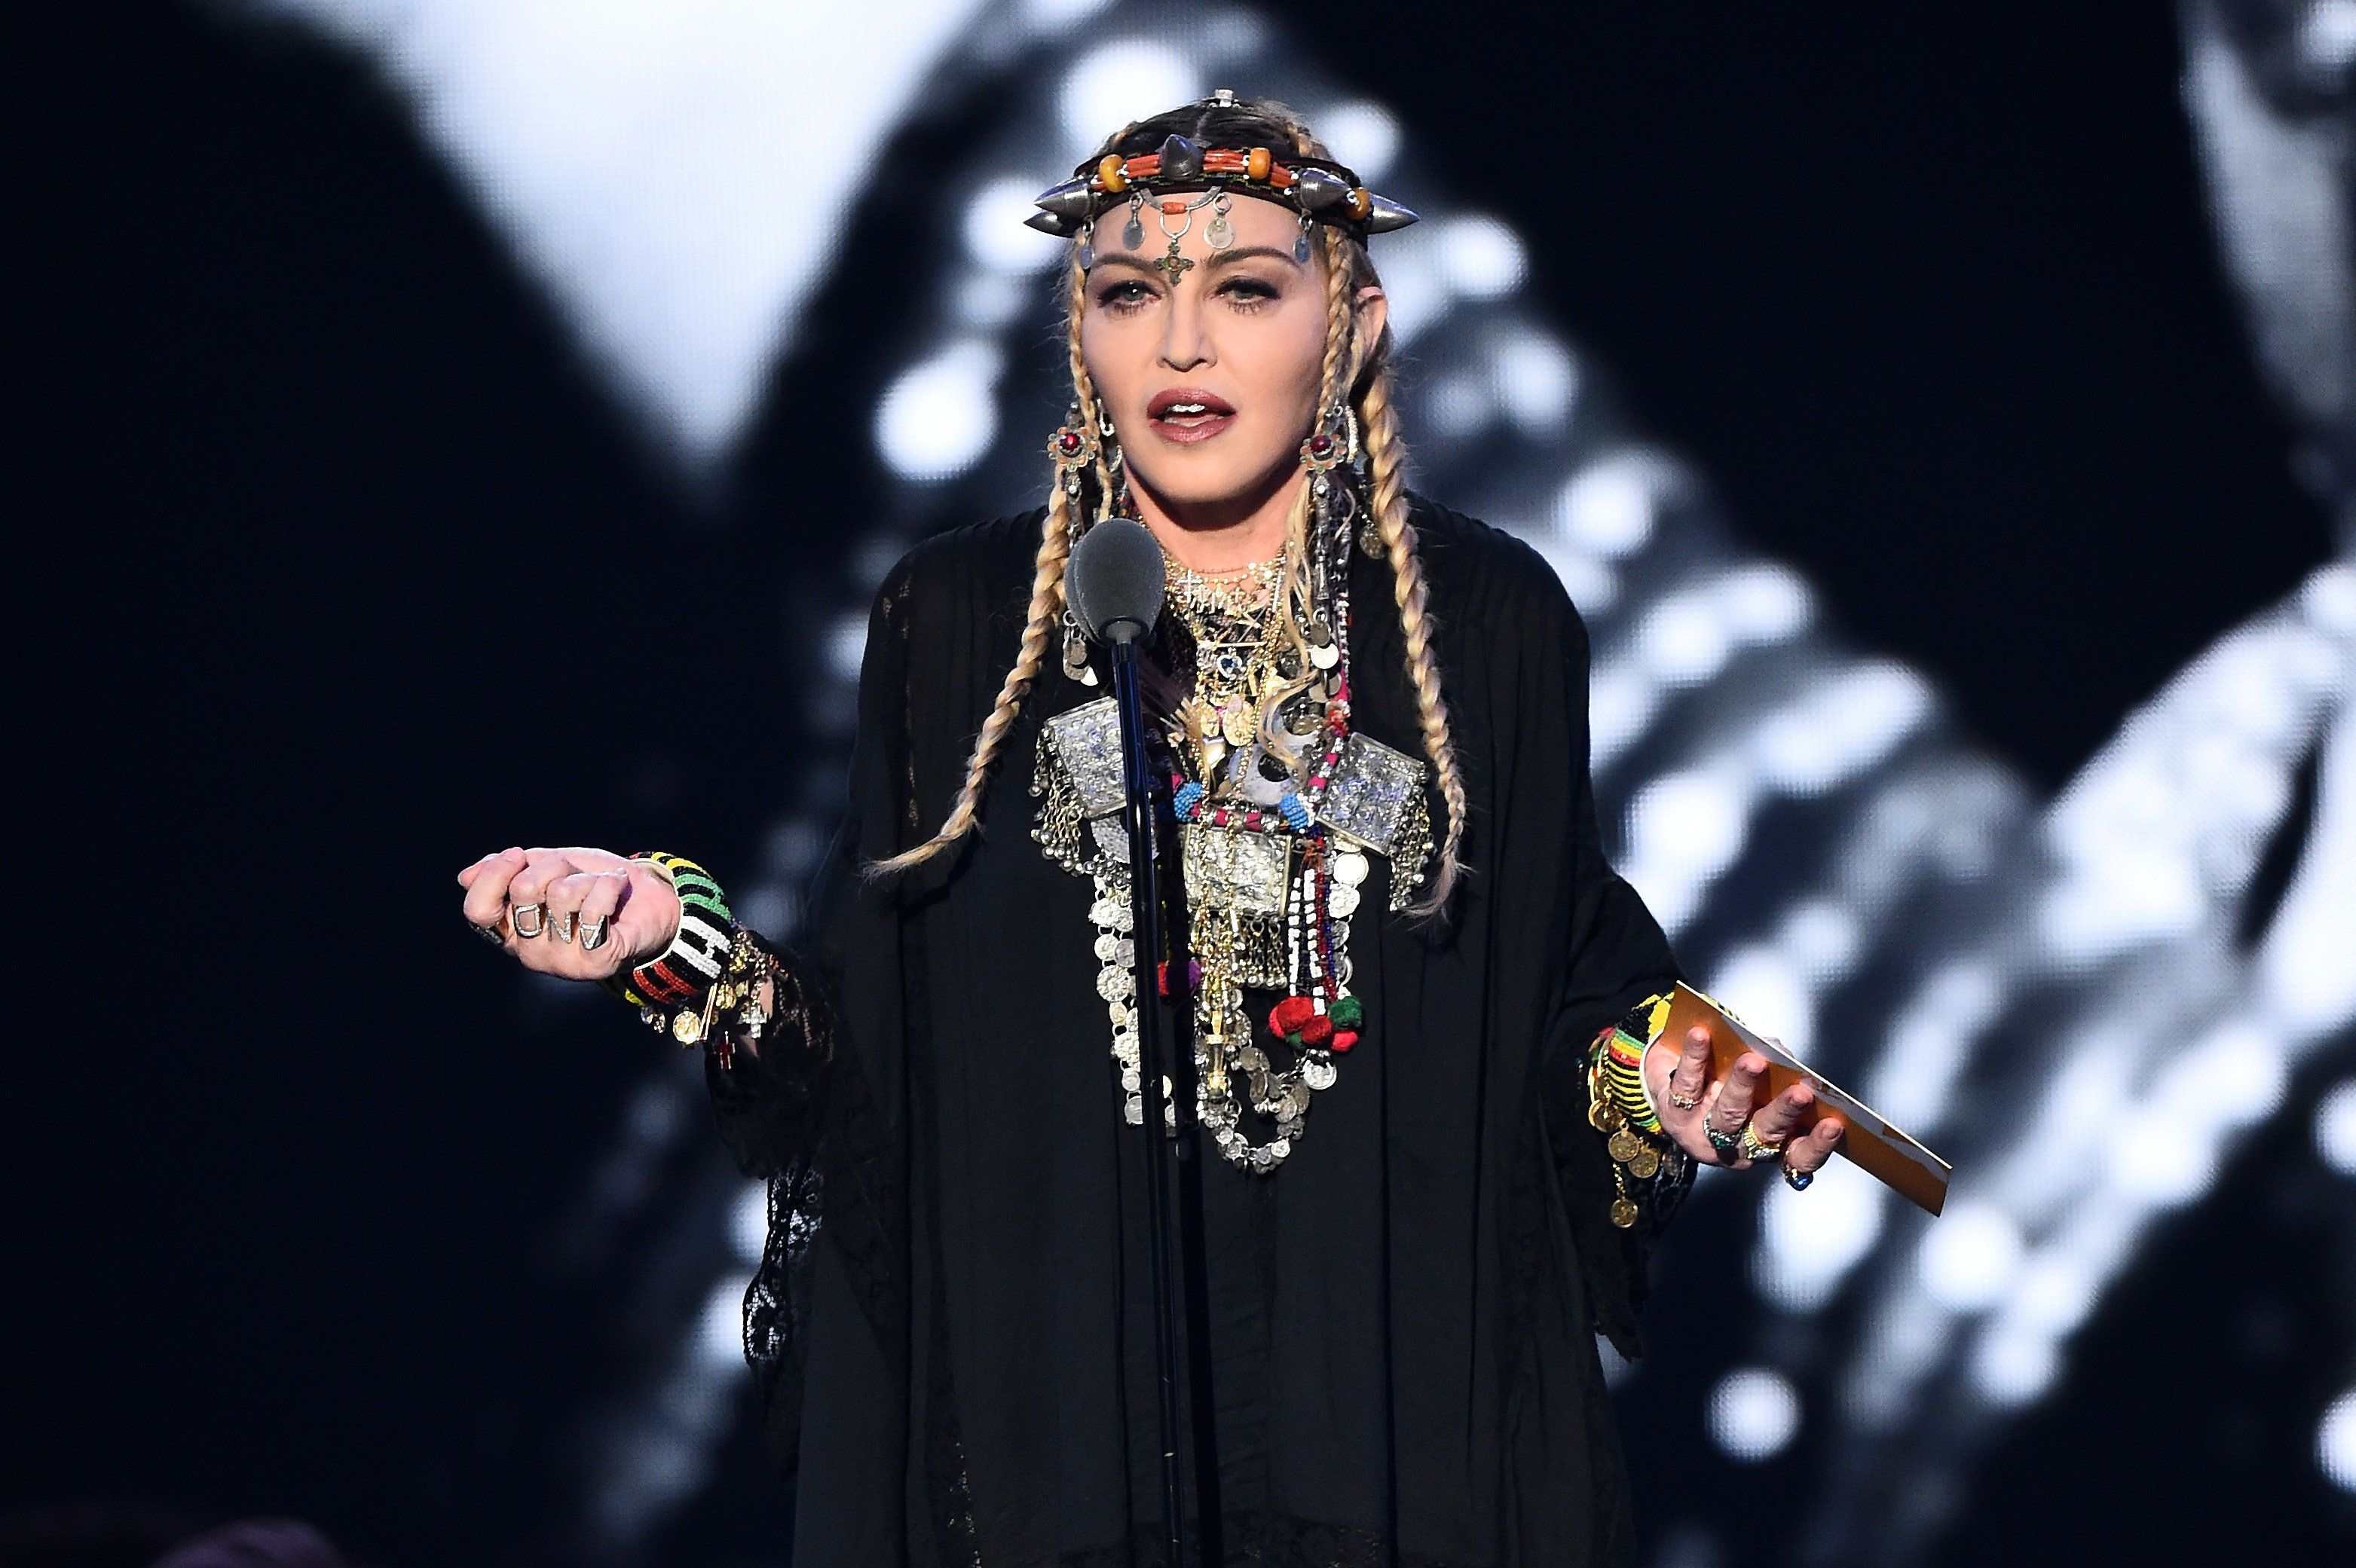 NEW YORK, NY - AUGUST 20:  Madonna presents the award for Video of the Year onstage during the 2018 MTV Video Music Awards at Radio City Music Hall on August 20, 2018 in New York City.  (Photo by Michael Loccisano/Getty Images for MTV)